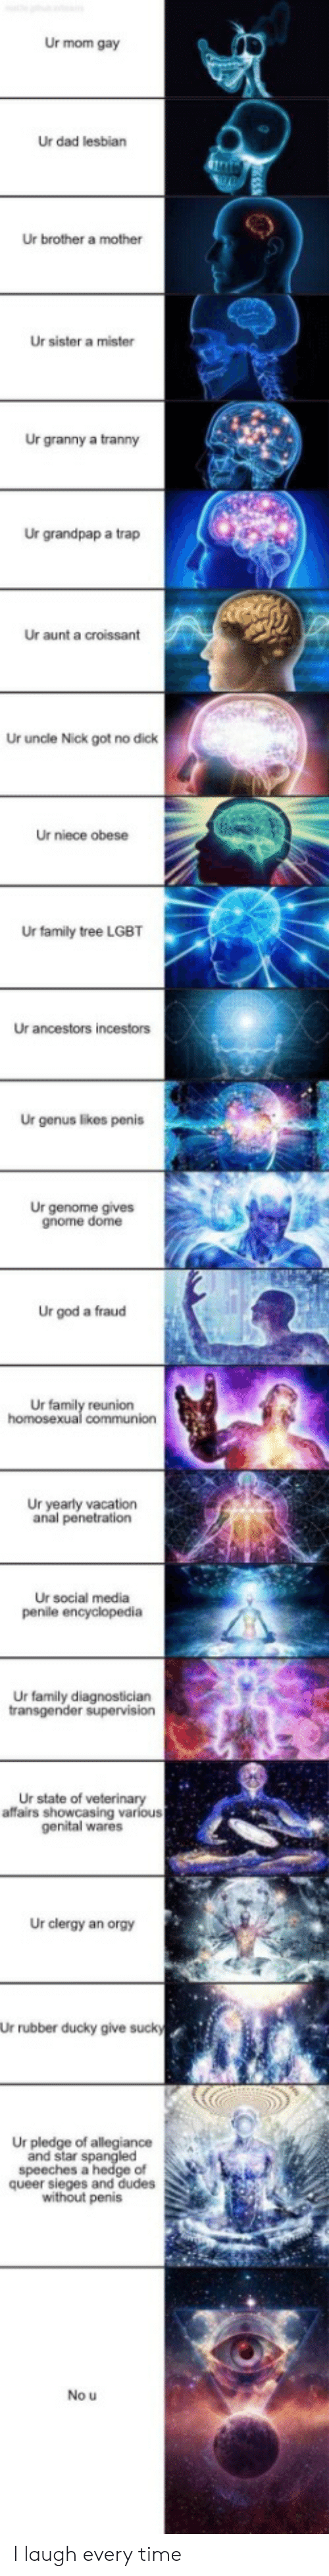 LGBT: Ur mom gay  Ur dad lesbian  Ur brother a mother  Ur sister a mister  Ur granny a tranny  Ur grandpap a trap  Ur aunt a croissant  Ur uncle Nick got no dick  Ur niece obese  Ur family tree LGBT  Ur ancestors incestors  Ur genus likes penis  Ur genome gives  gnome dome  Ur god a fraud  Ur family reunion  homosexual communion  Ur yearly vacation  anal penetration  Ur social media  penile encyclopedia  Ur family diagnostician  transgender supervision  Ur state of veterinary  affairs showcasing various  genital wares  Ur clergy an orgy  Ur rubber ducky give sucky  Ur pledge of allegiance  and star spangled  speeches a hedge of  queer sieges and dudes  without penis  No u I laugh every time